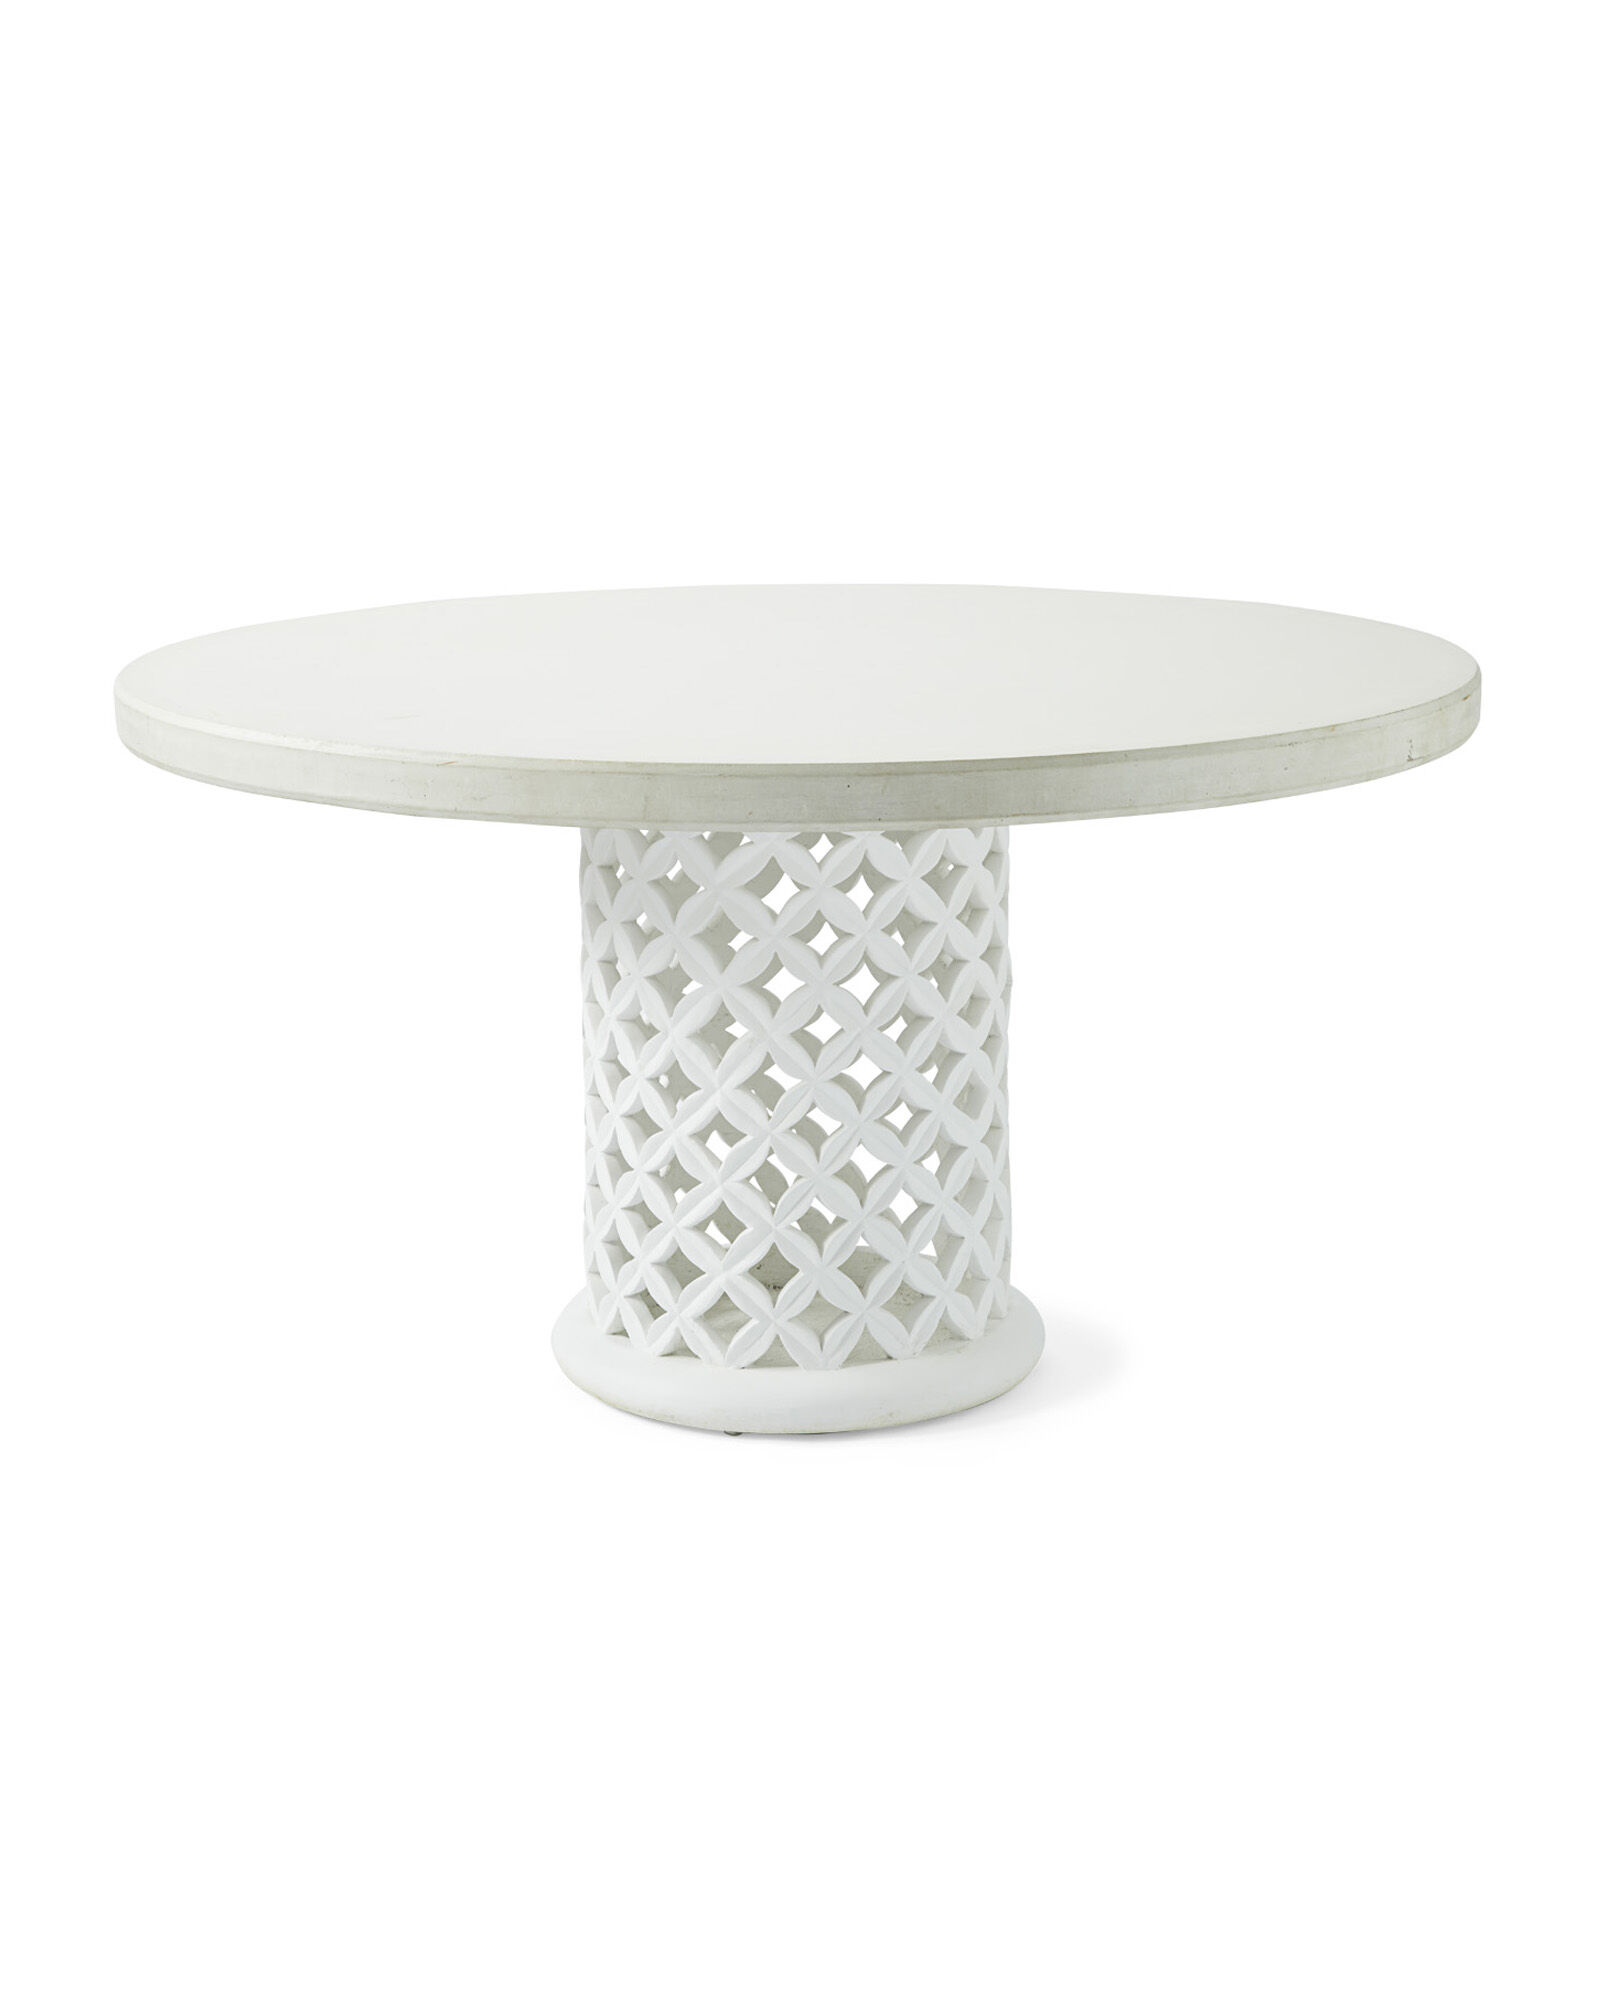 Bamileke Round Dining Table